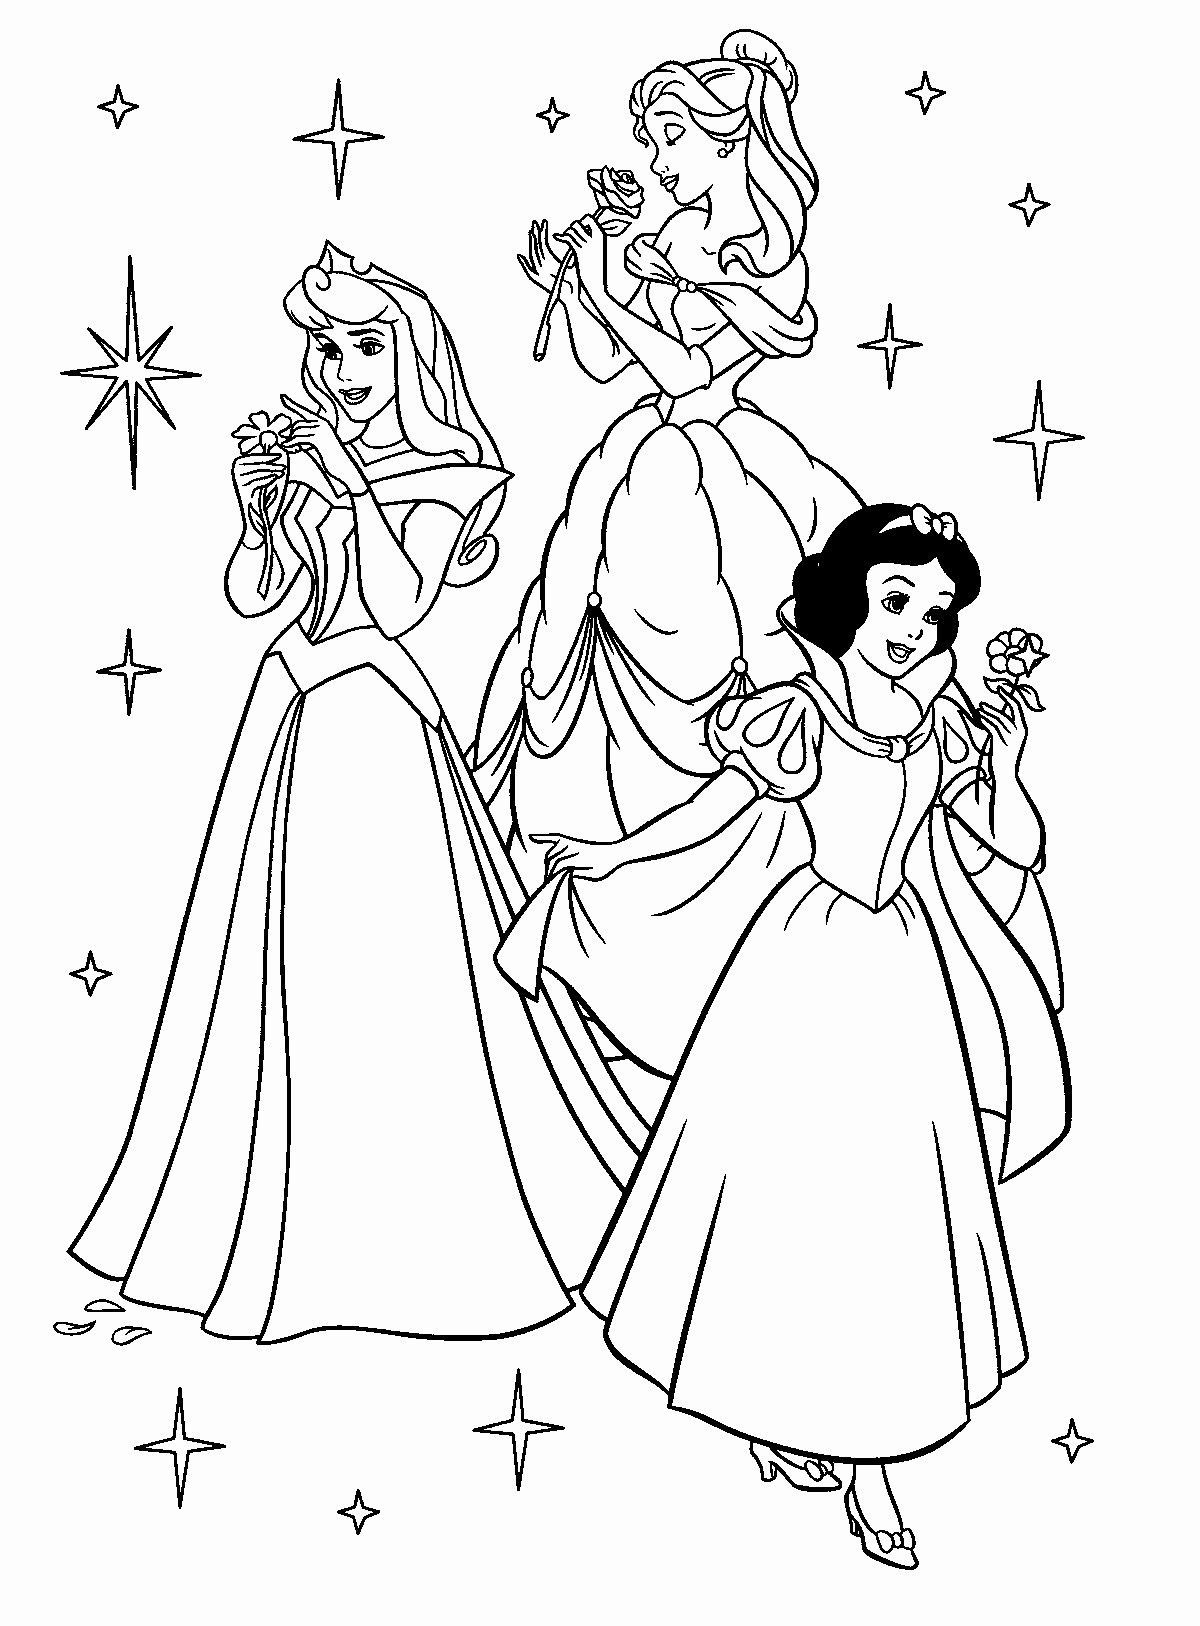 Princess Colouring Pages A4 Through The Thousand Images On The Net About Princess Col Princess Coloring Pages Disney Coloring Sheets Princess Coloring Sheets